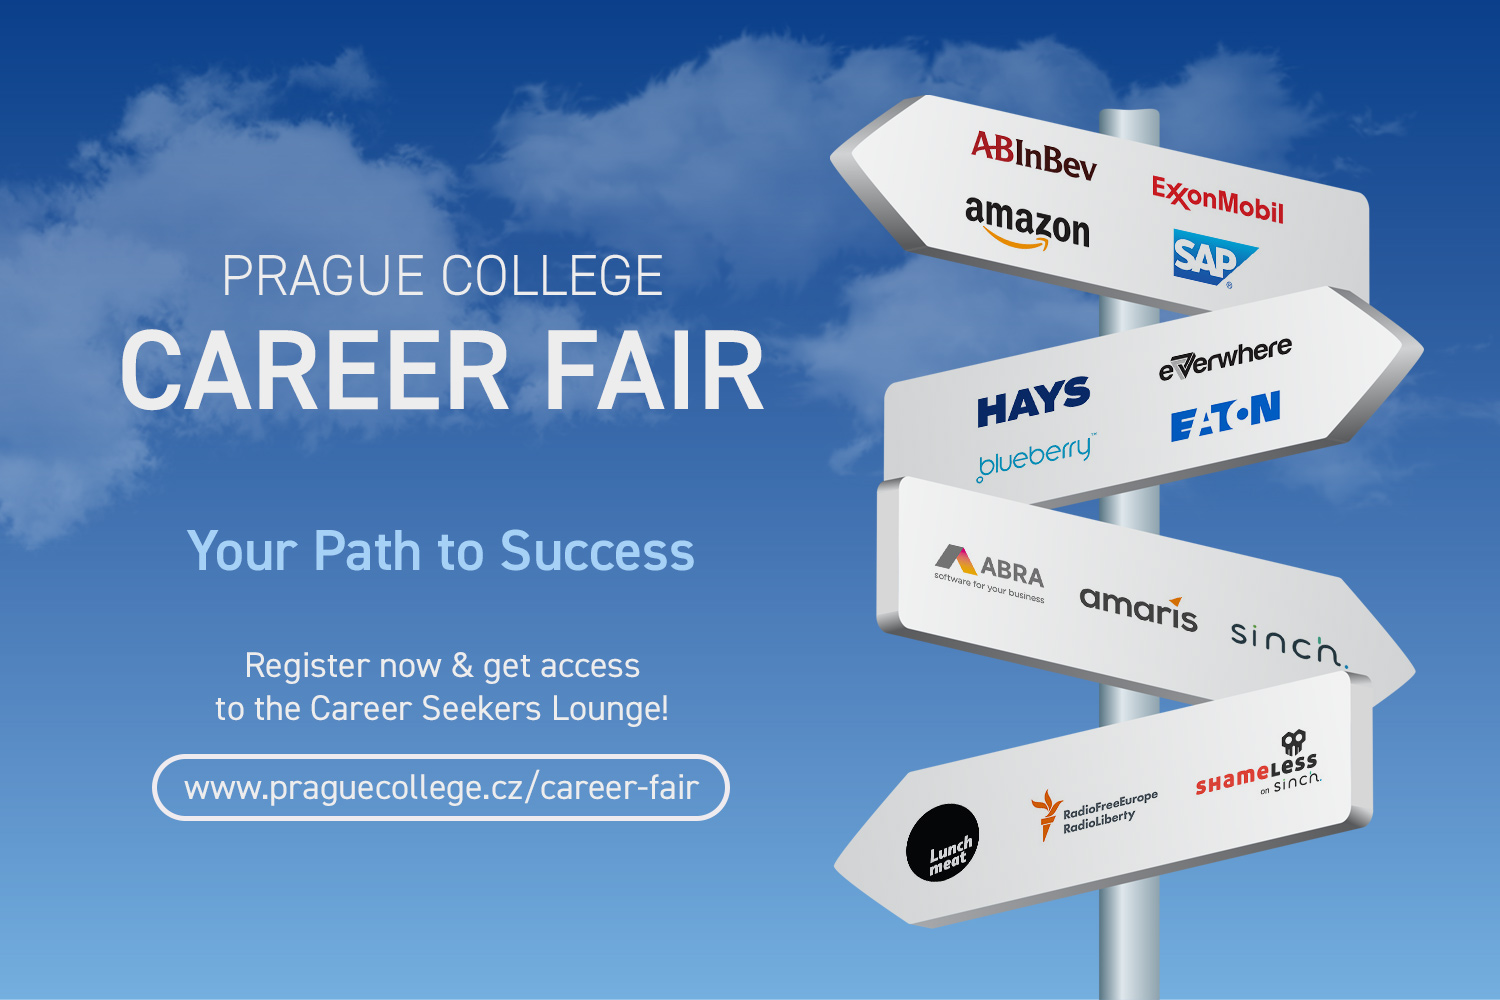 Career Fair 2019: Your Path To Success